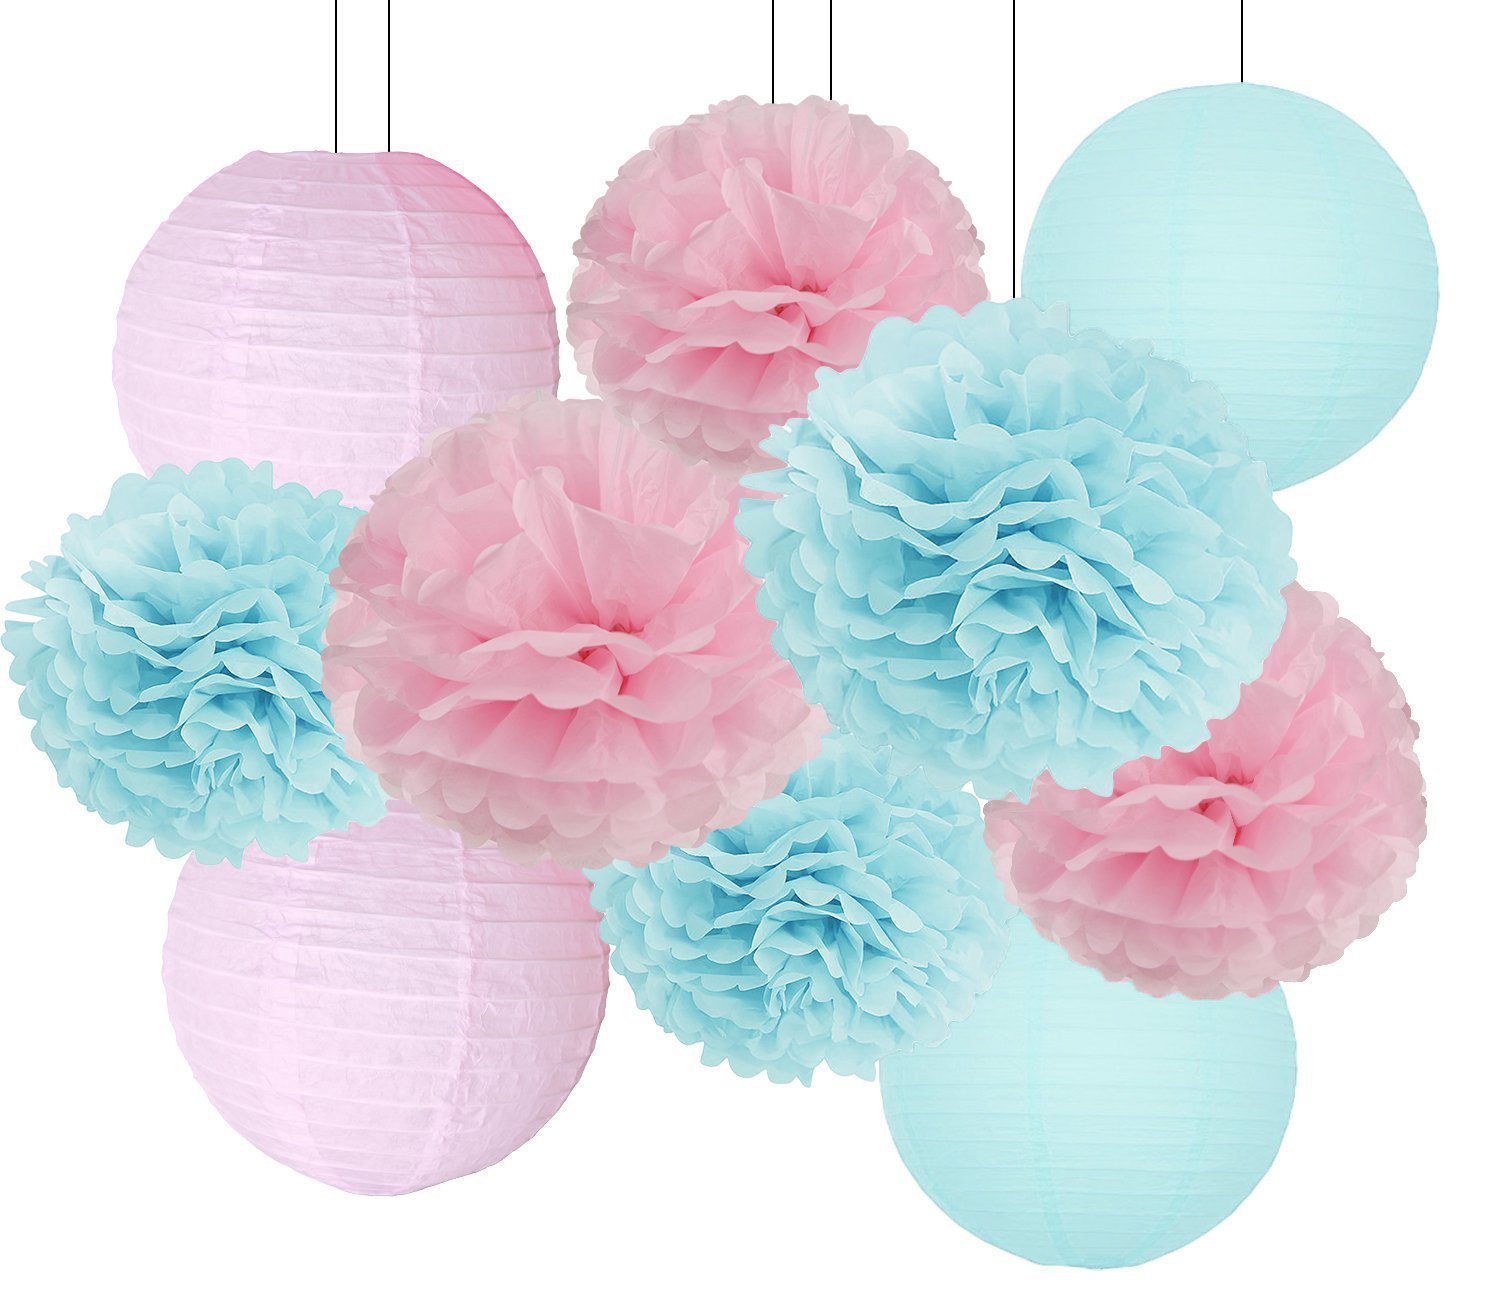 Gender Reveal Party Decorations Baby Shower Decorations Baby Blue Pink Tissue Paper Pom Pom Flowers Paper Lanterns for Birthday/Pink and Blue Decorations /Gender Reveal Decorations